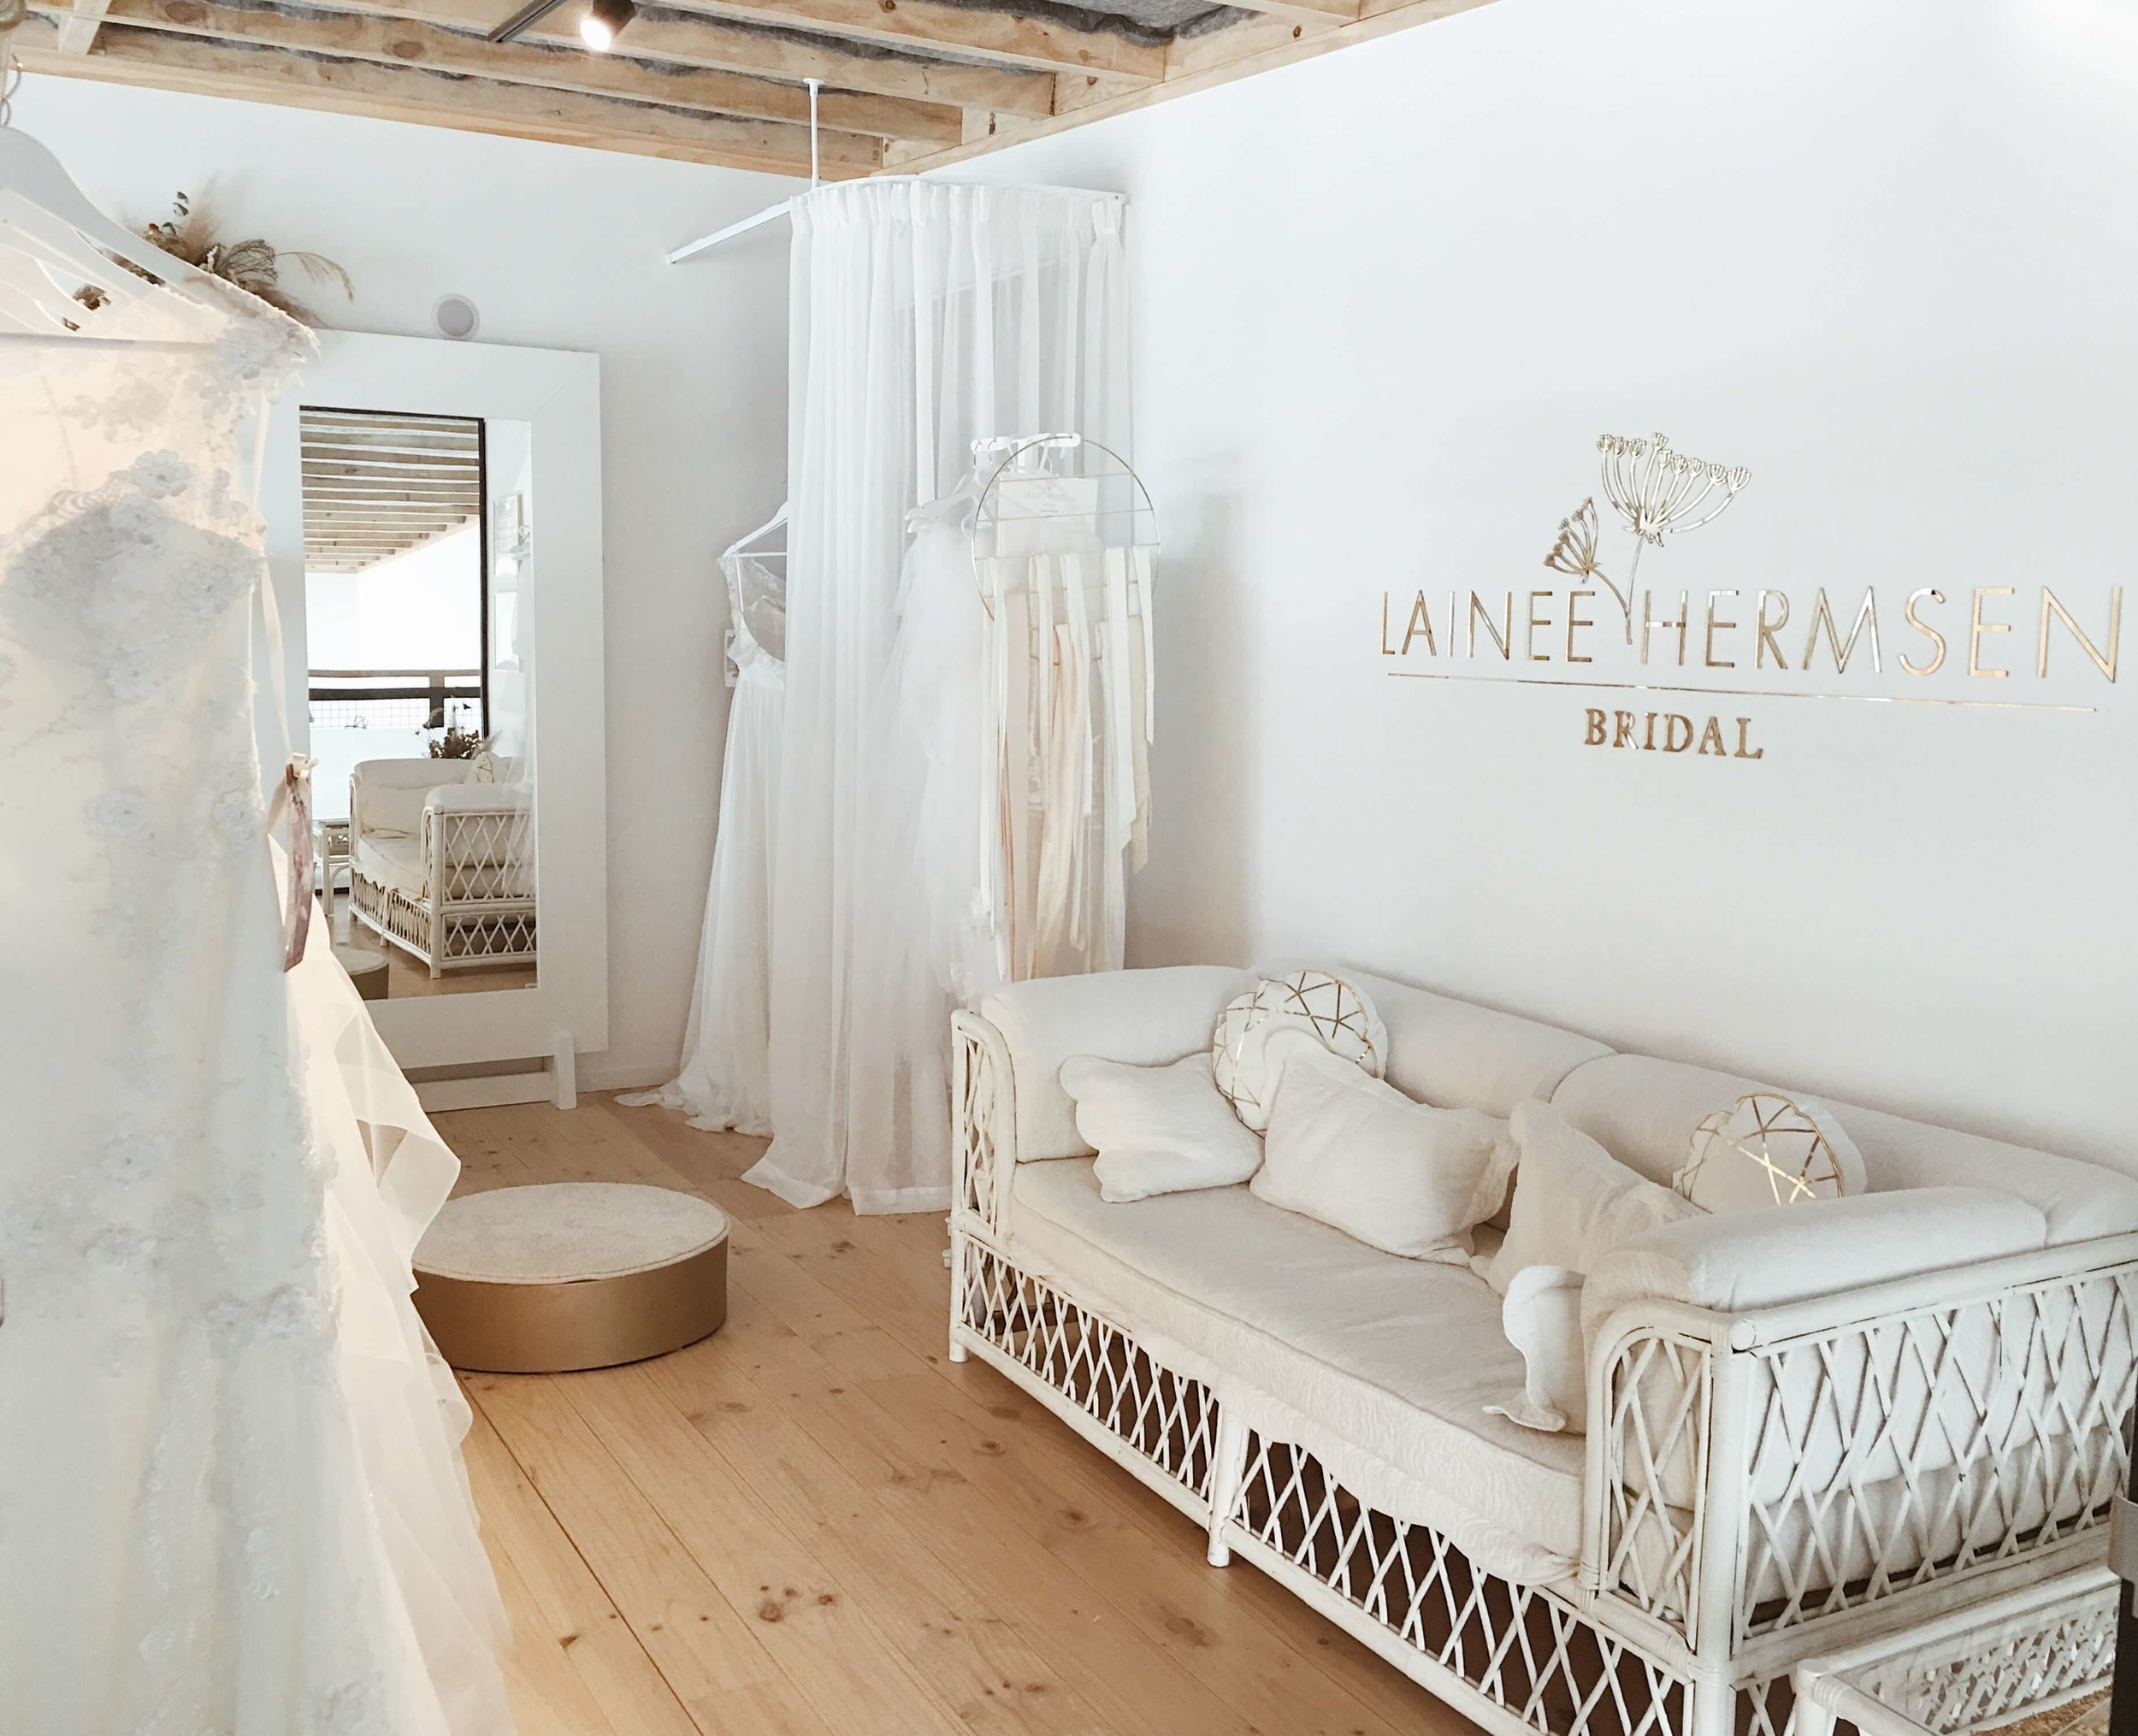 LAINEE HERMSEN BRIDAL - The Got It Covered Nelson showroom has a boutique space located on the mezzanine floor dedicated to the Lainee Hermsen Bridal flagship store.The wedding dress collection is available to view during opening hours and bookings are taken for a private consultation.Got It Covered is the top of the south stockist of Lainee Hermsen Bridal and the only place where you can deal directly with the designer herself.To book a private consultation please fill in the form below and we will get back to you with availability.